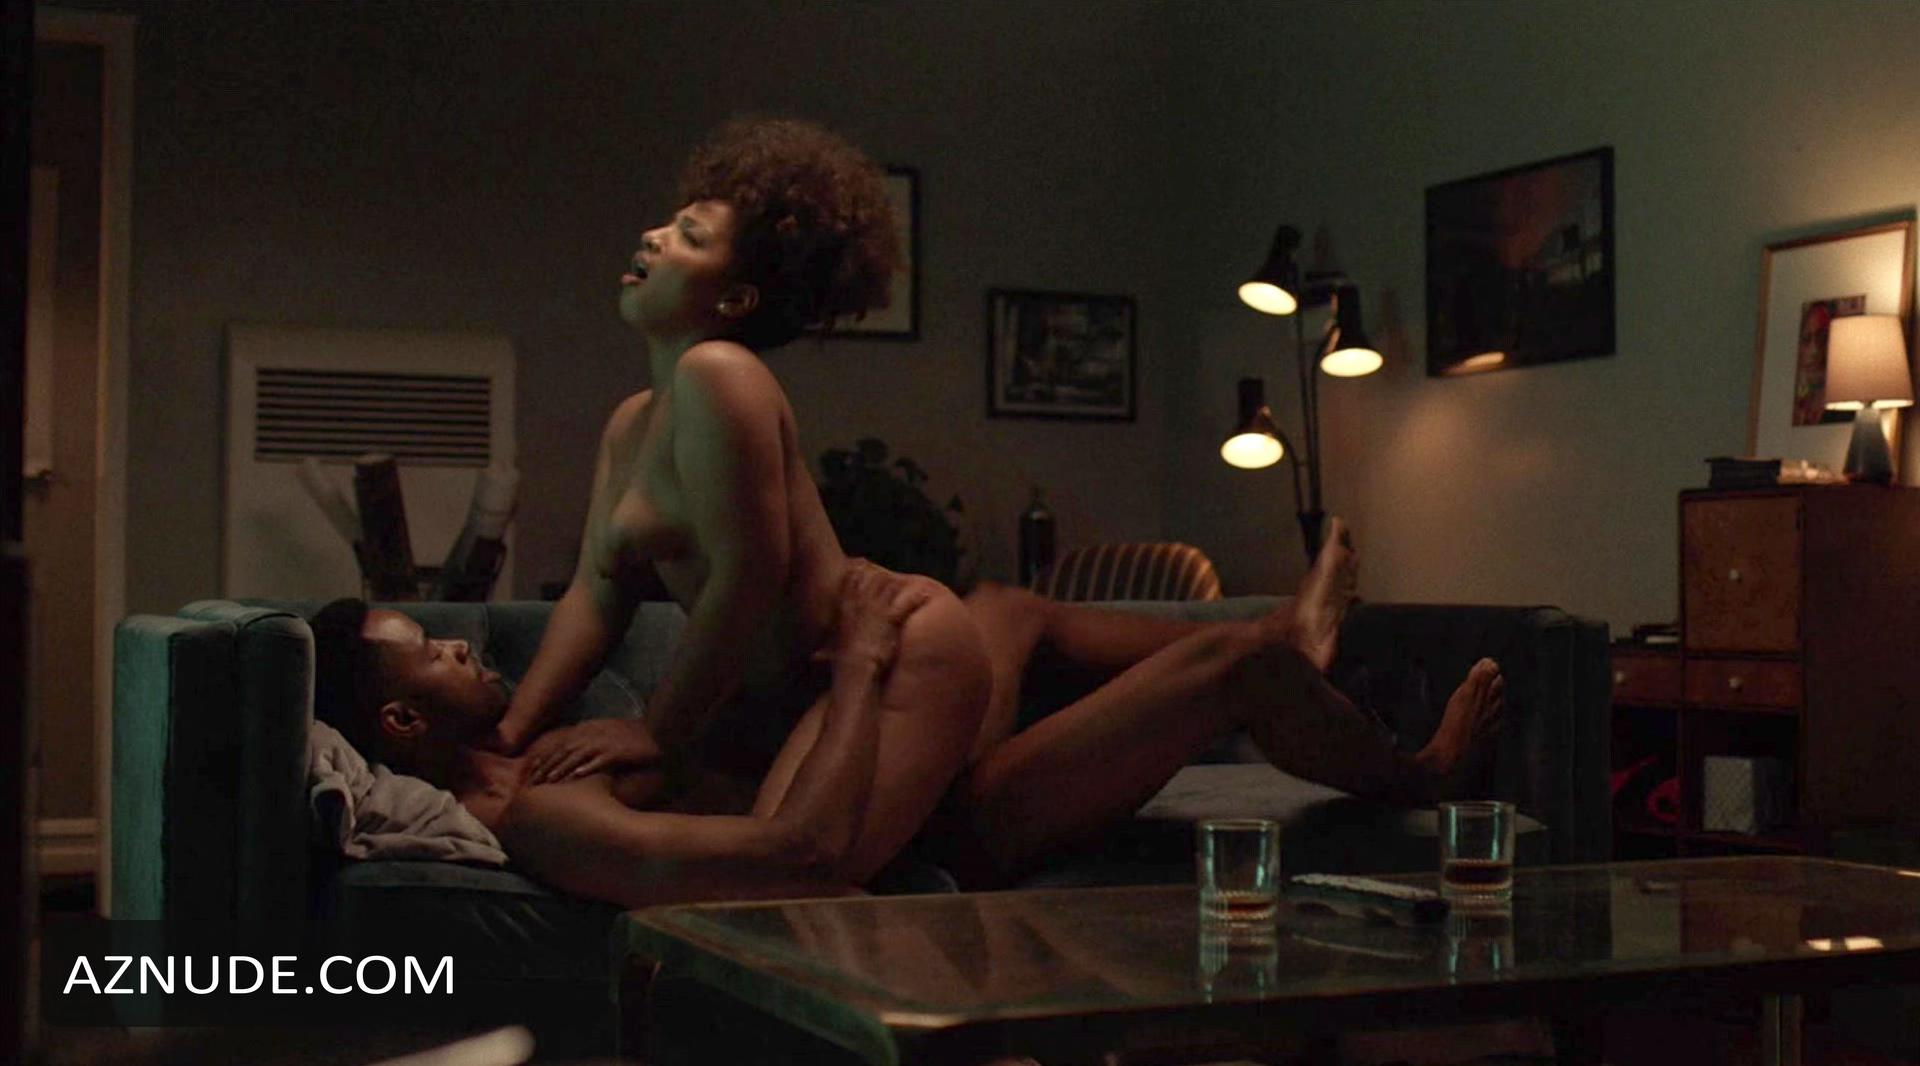 Alison law sex scene from insecure on scandalplanetcom - 1 part 7